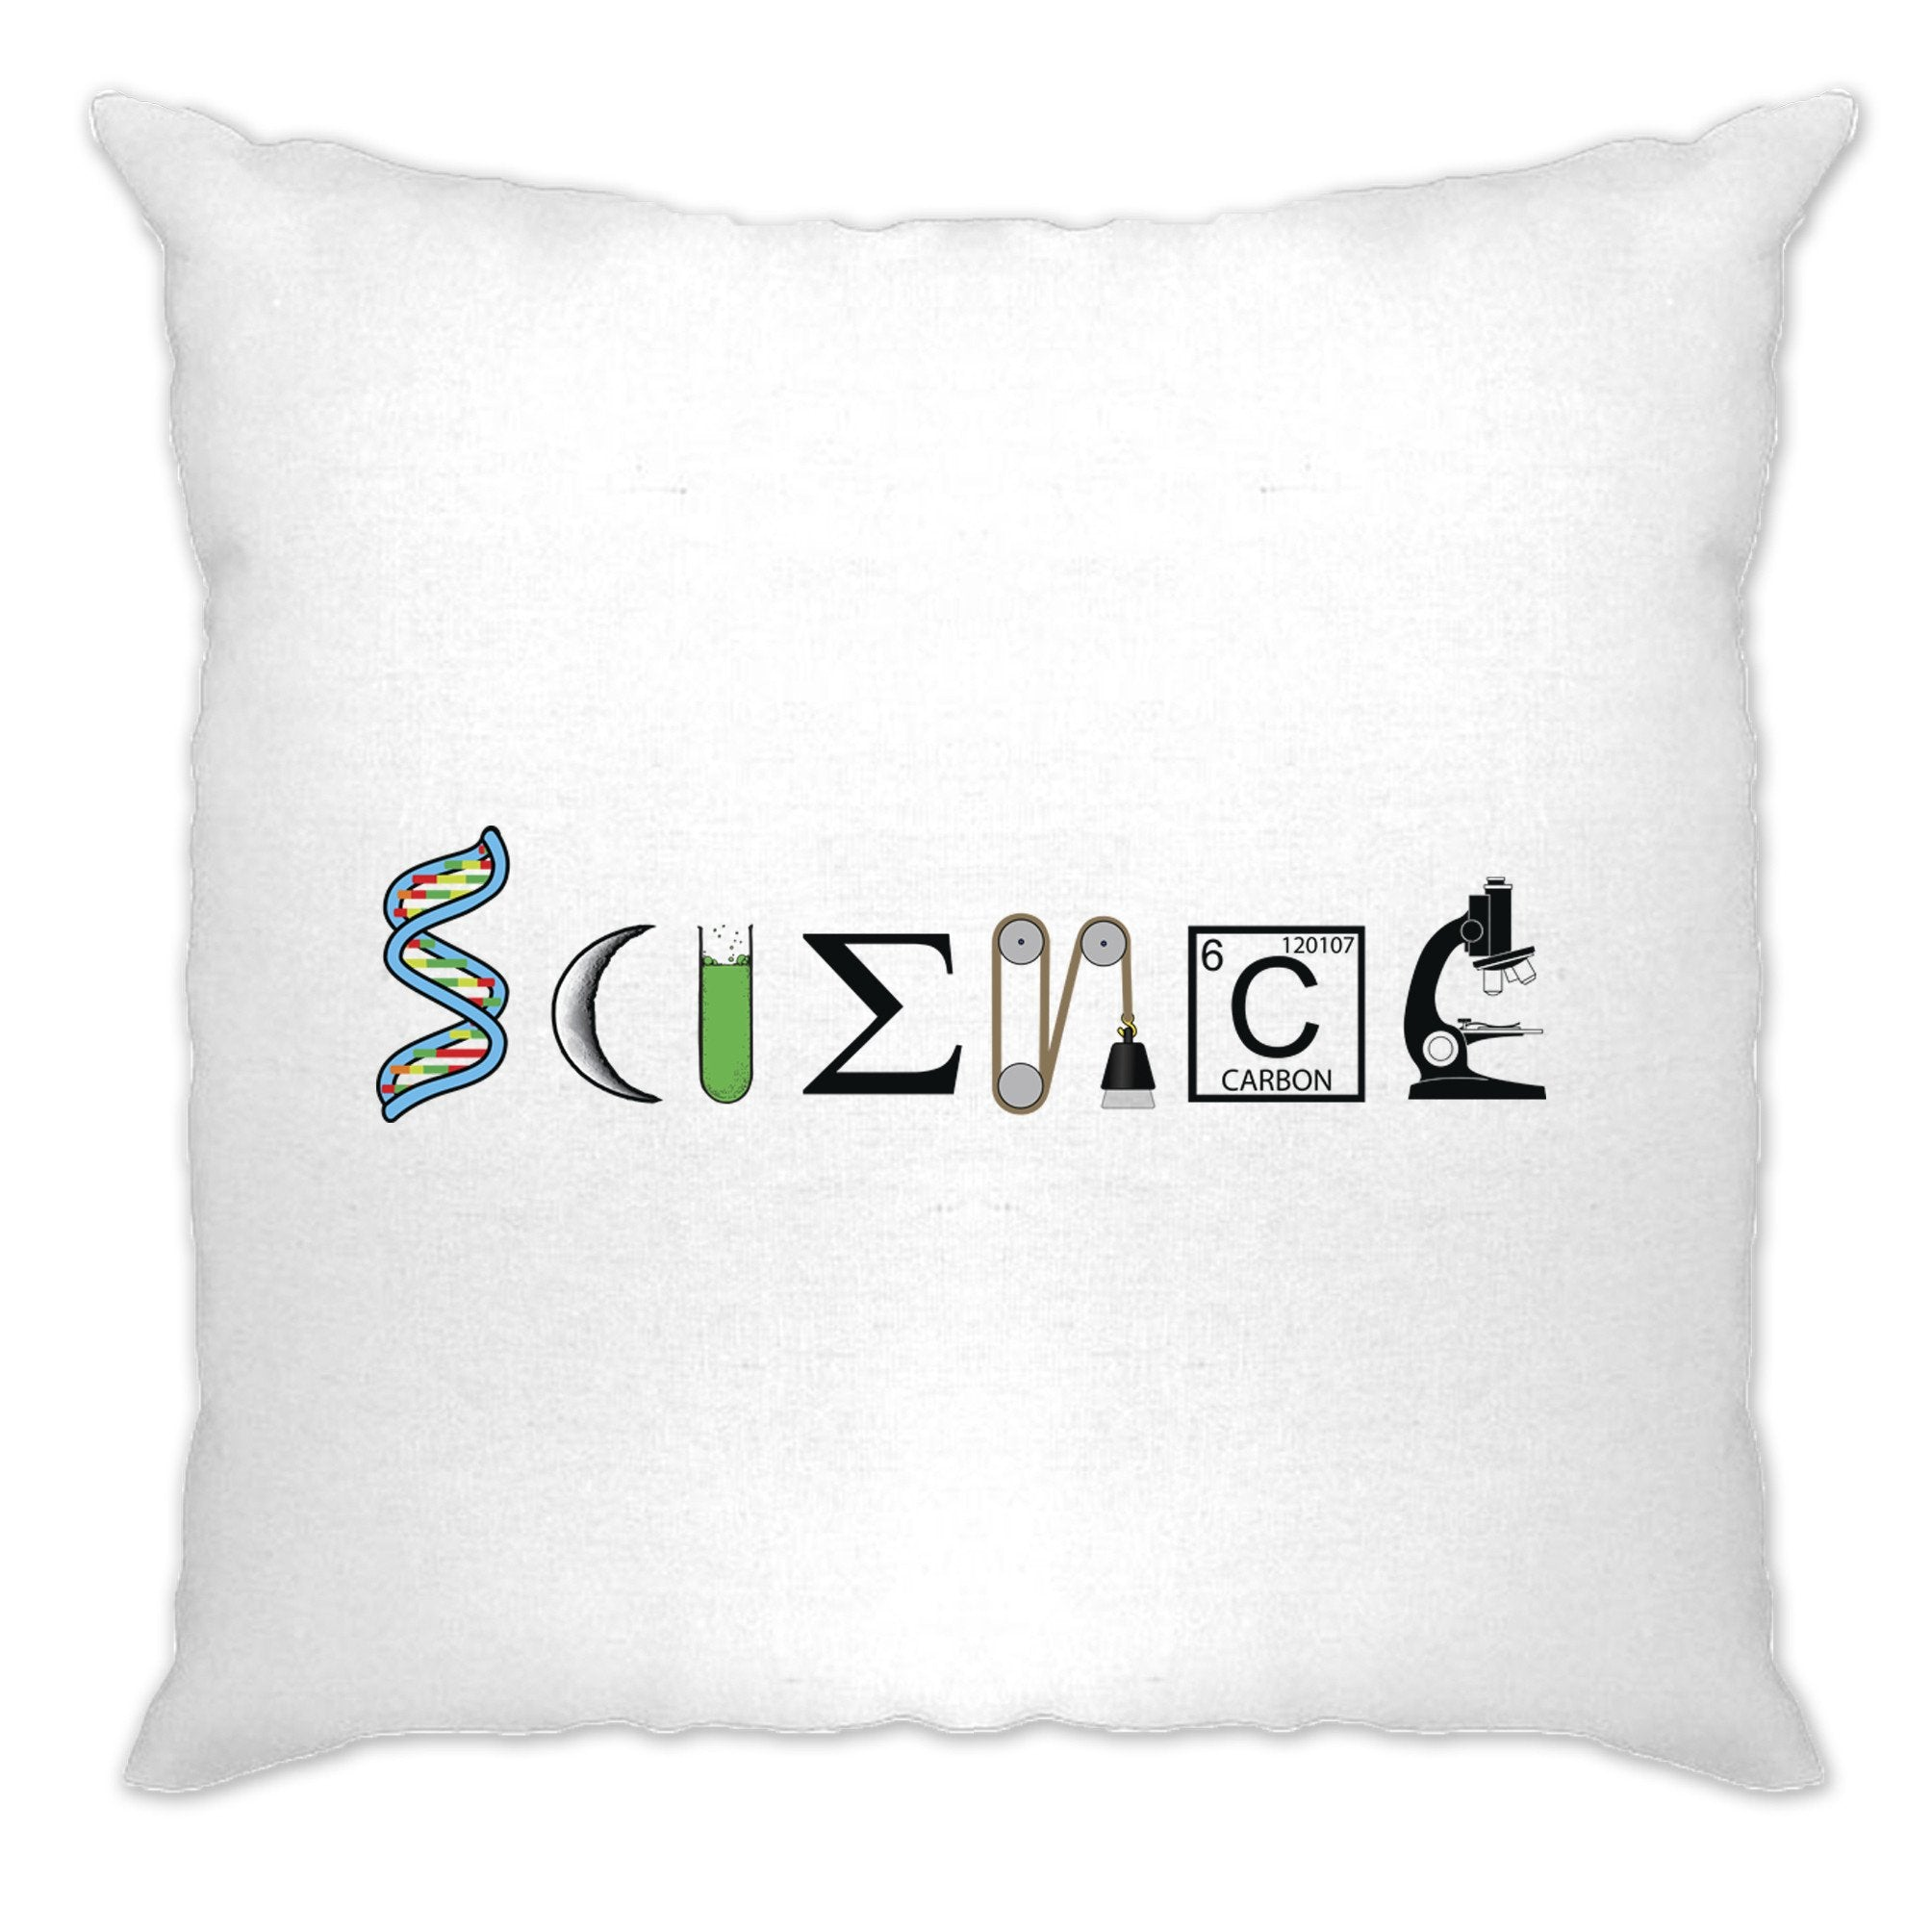 The Word Science Cushion Cover Made From Scientific Things